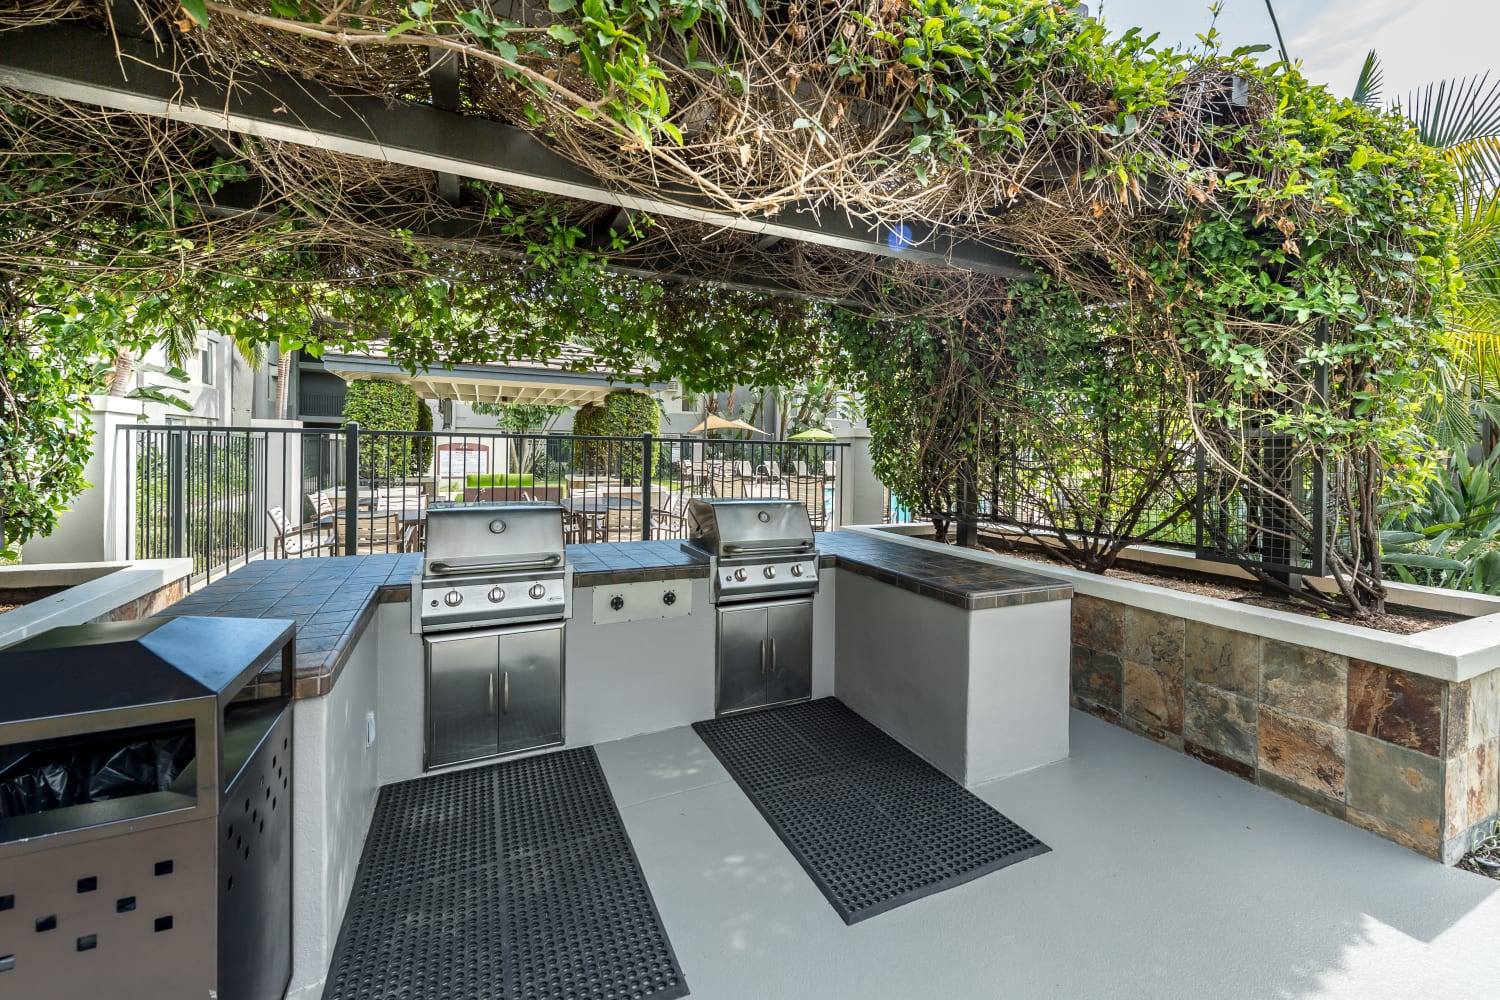 UCE Apartment Homes in Fullerton, California, offers a barbecue area